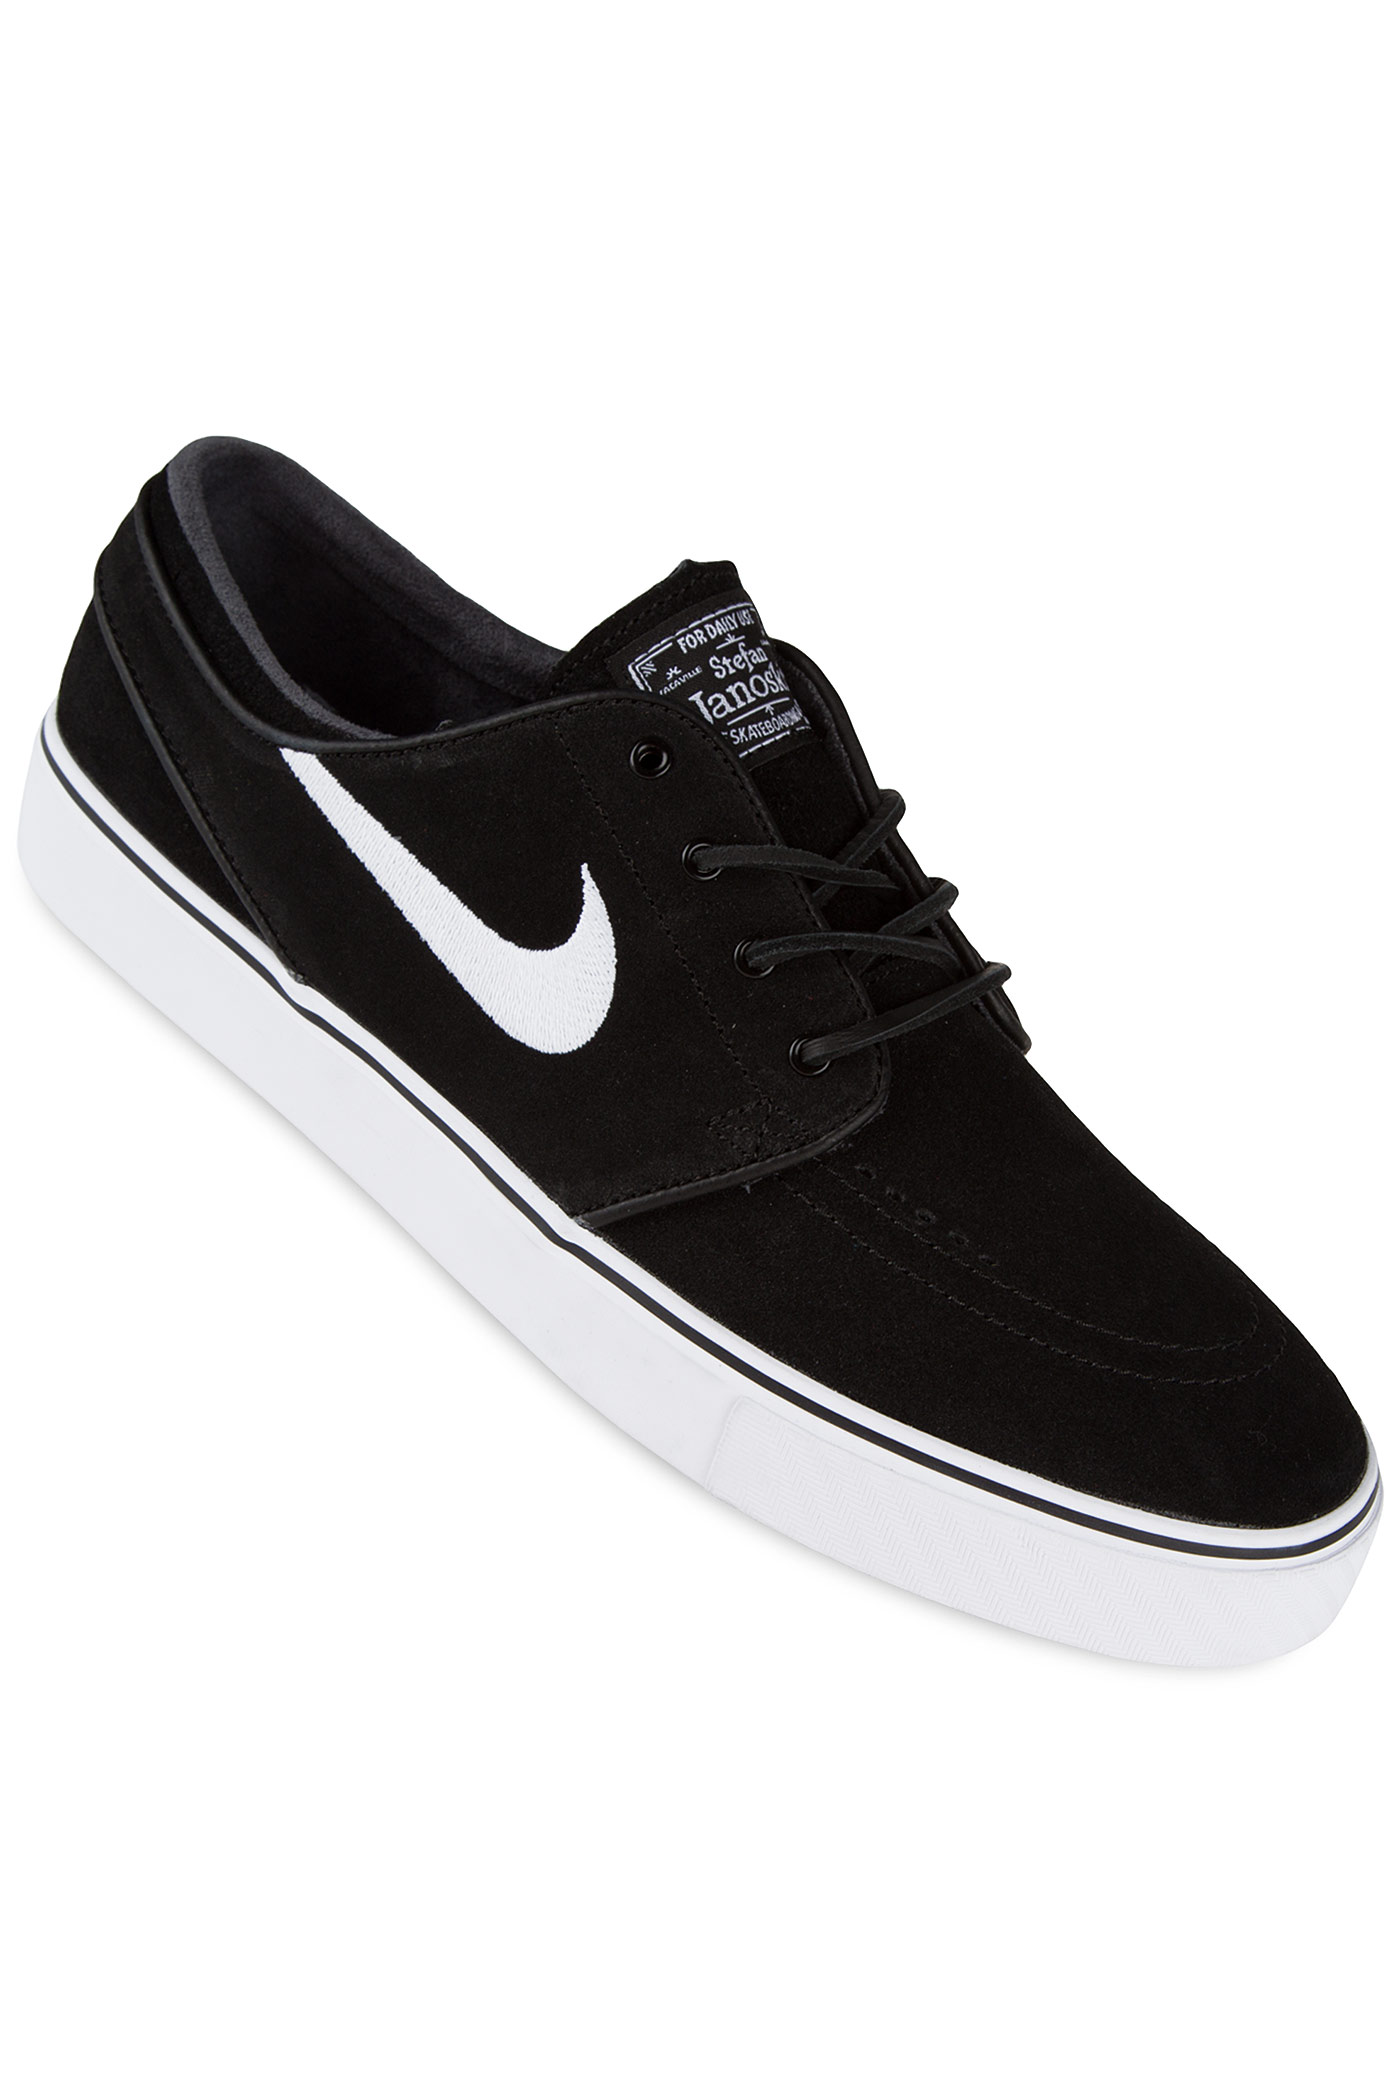 nike sb zoom stefan janoski og schuh black white gum. Black Bedroom Furniture Sets. Home Design Ideas